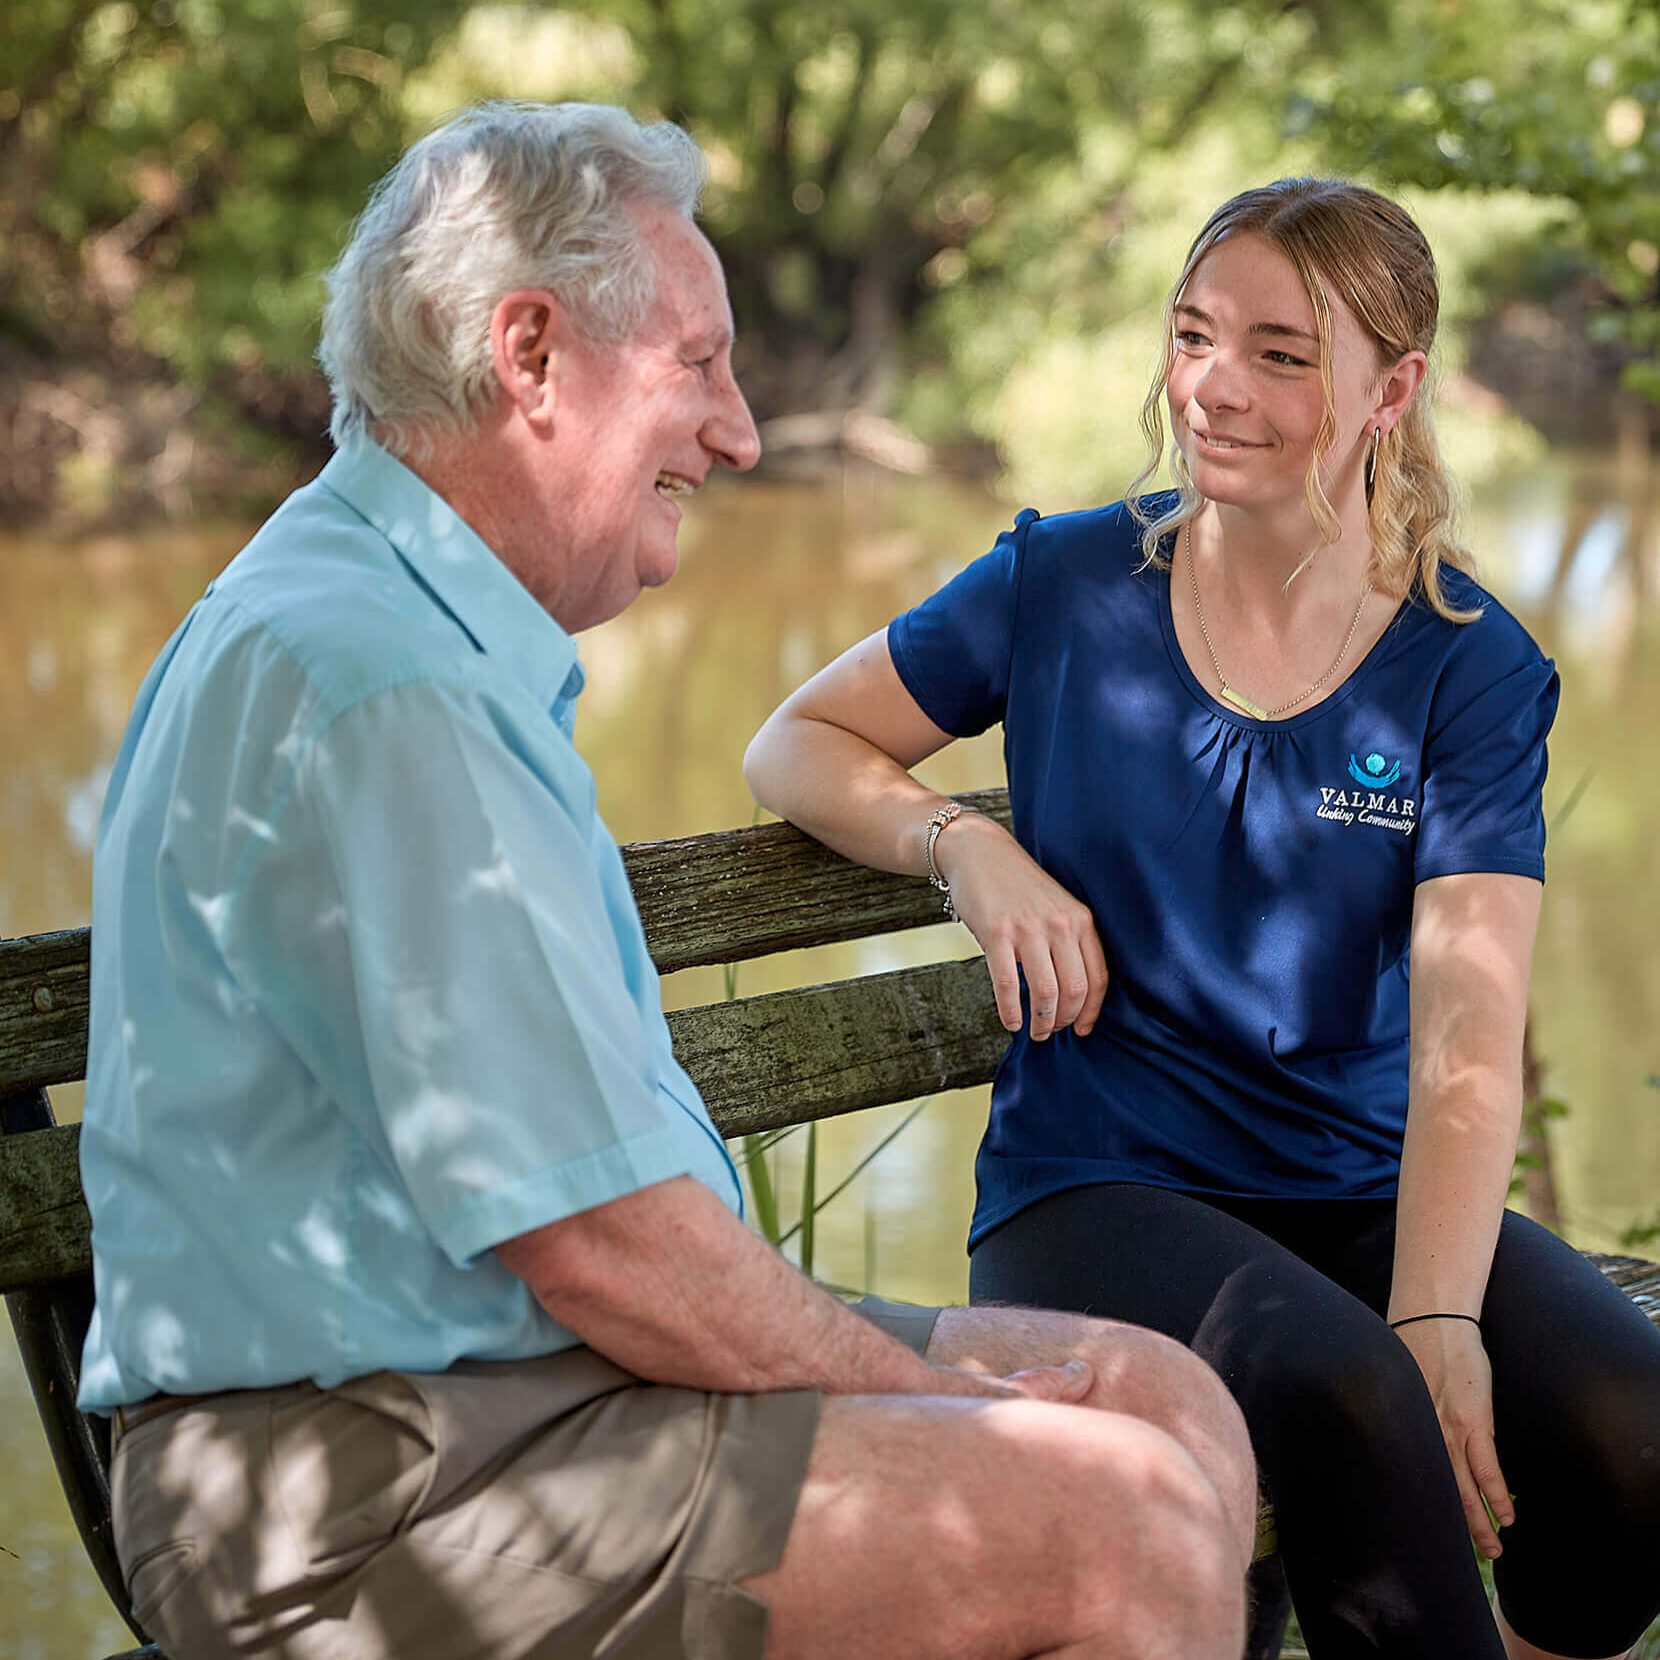 An elderly gentleman in a blue collared shirt and grey shorts sitting on a park bench. Next to him is a young woman with long blonde hair wearing a blue Valmar Support Services uniform.